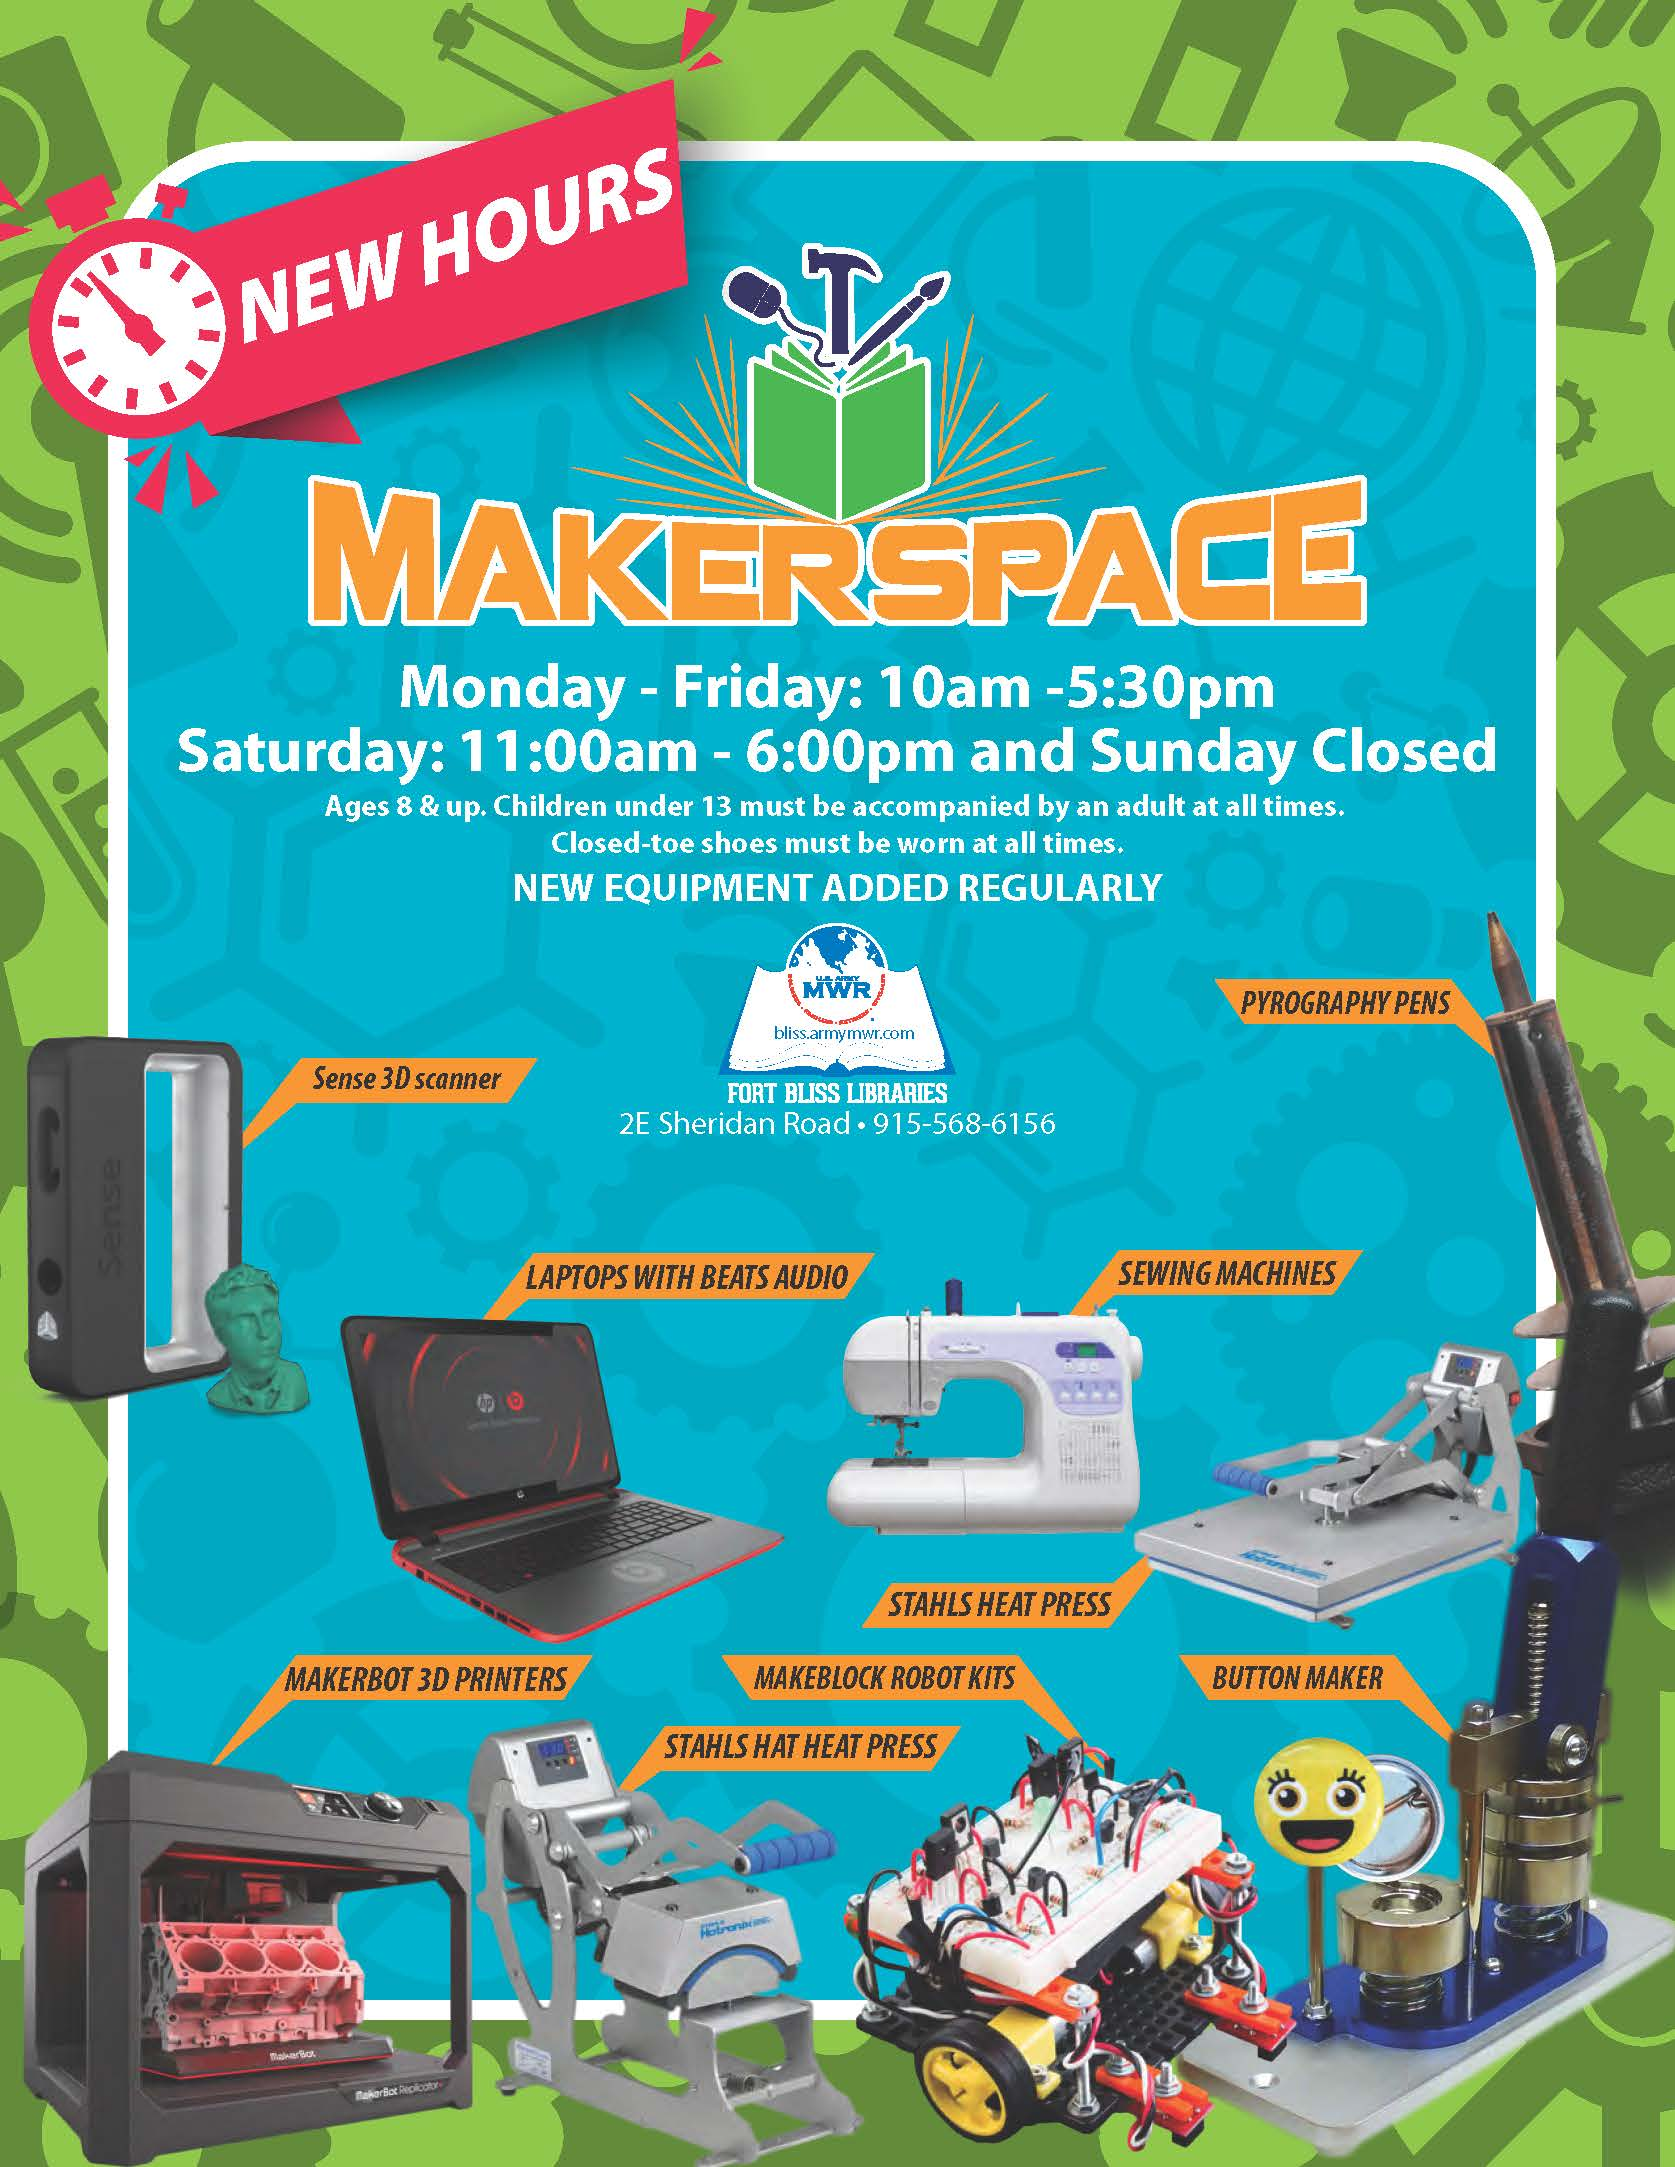 Maker_Space_Flyer_2019.jpg